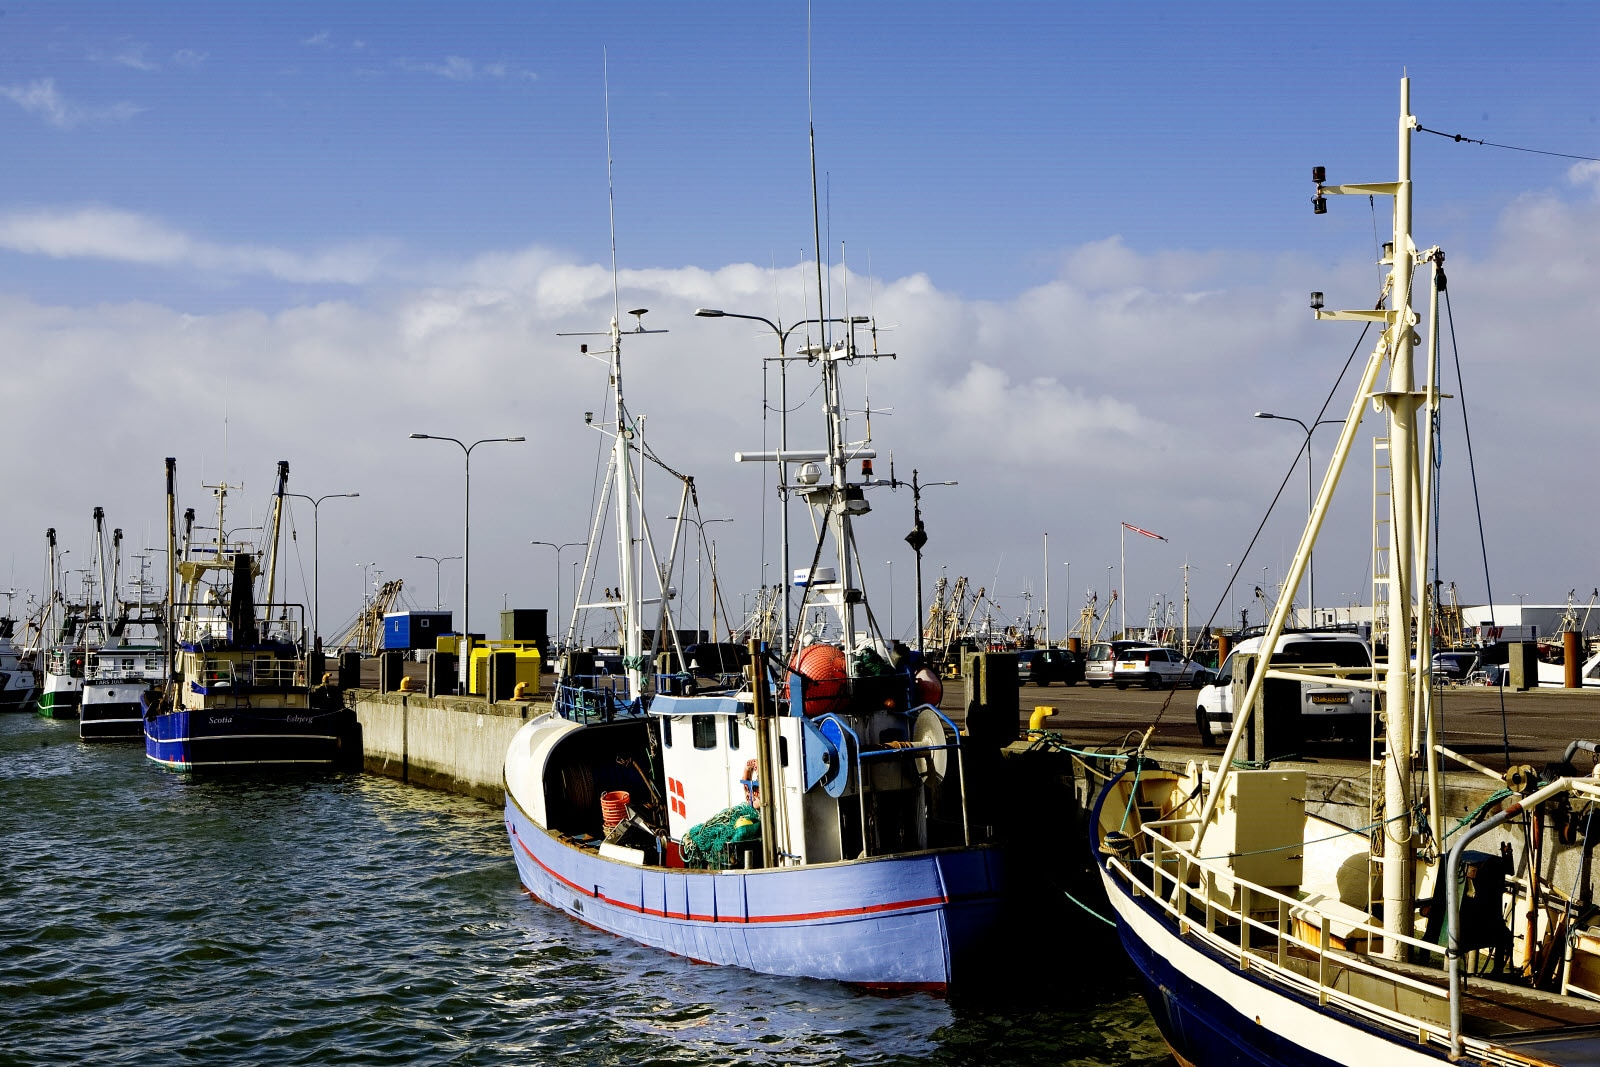 Fisher boats in Esbjerg